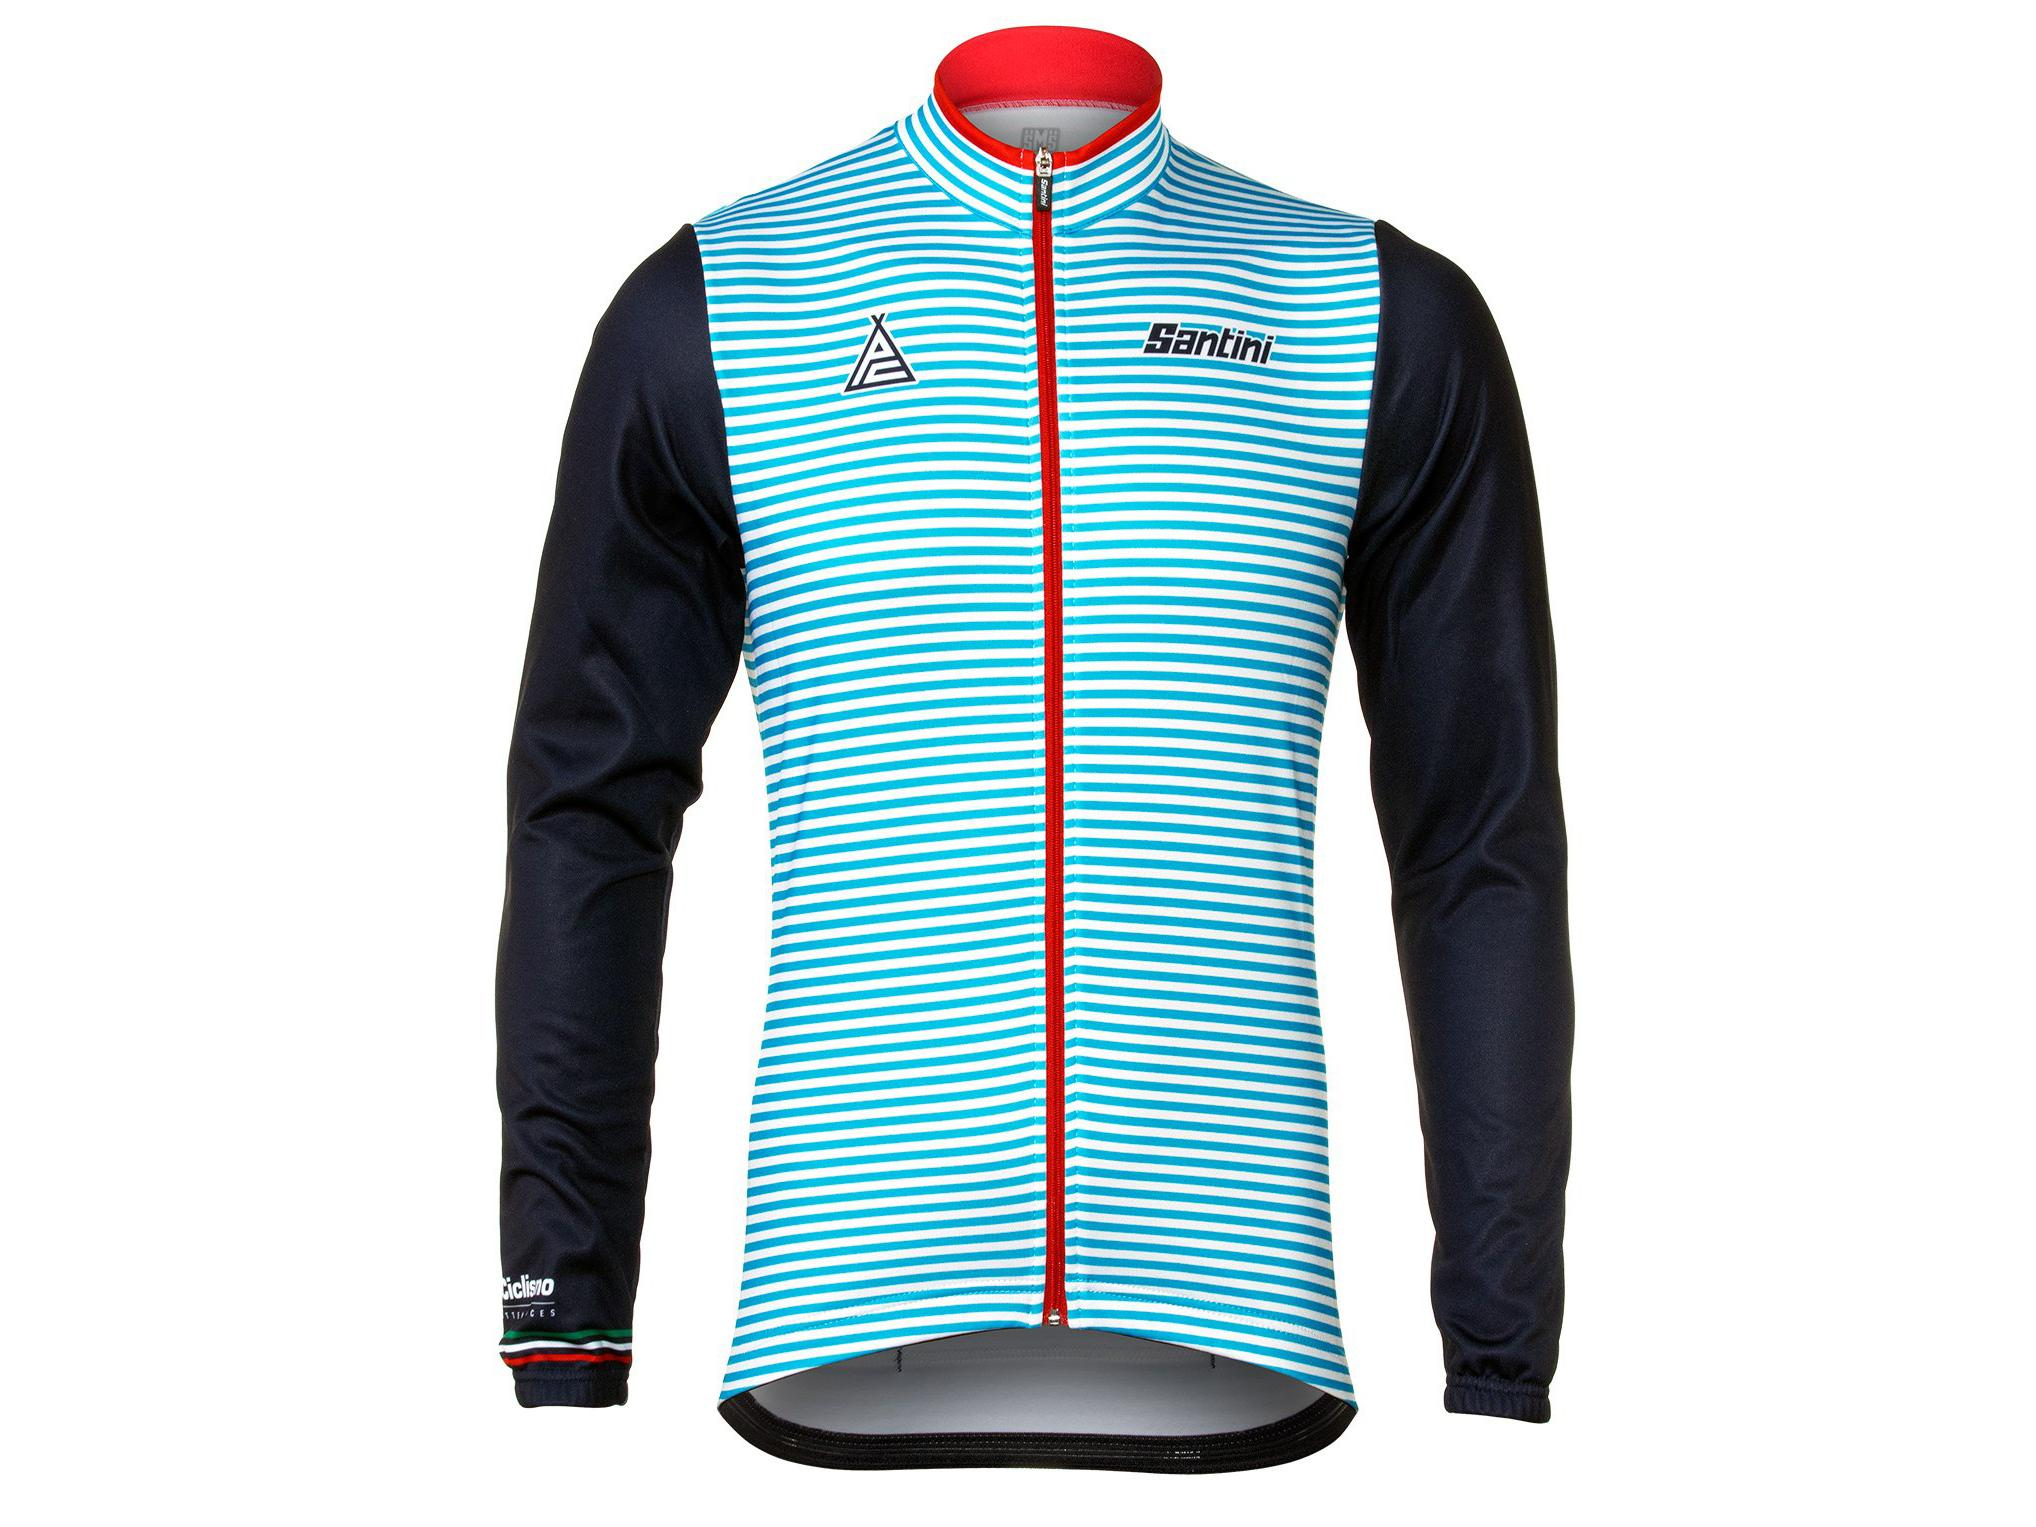 10 best men s cycling jerseys for autumn and winter  271b22a0c